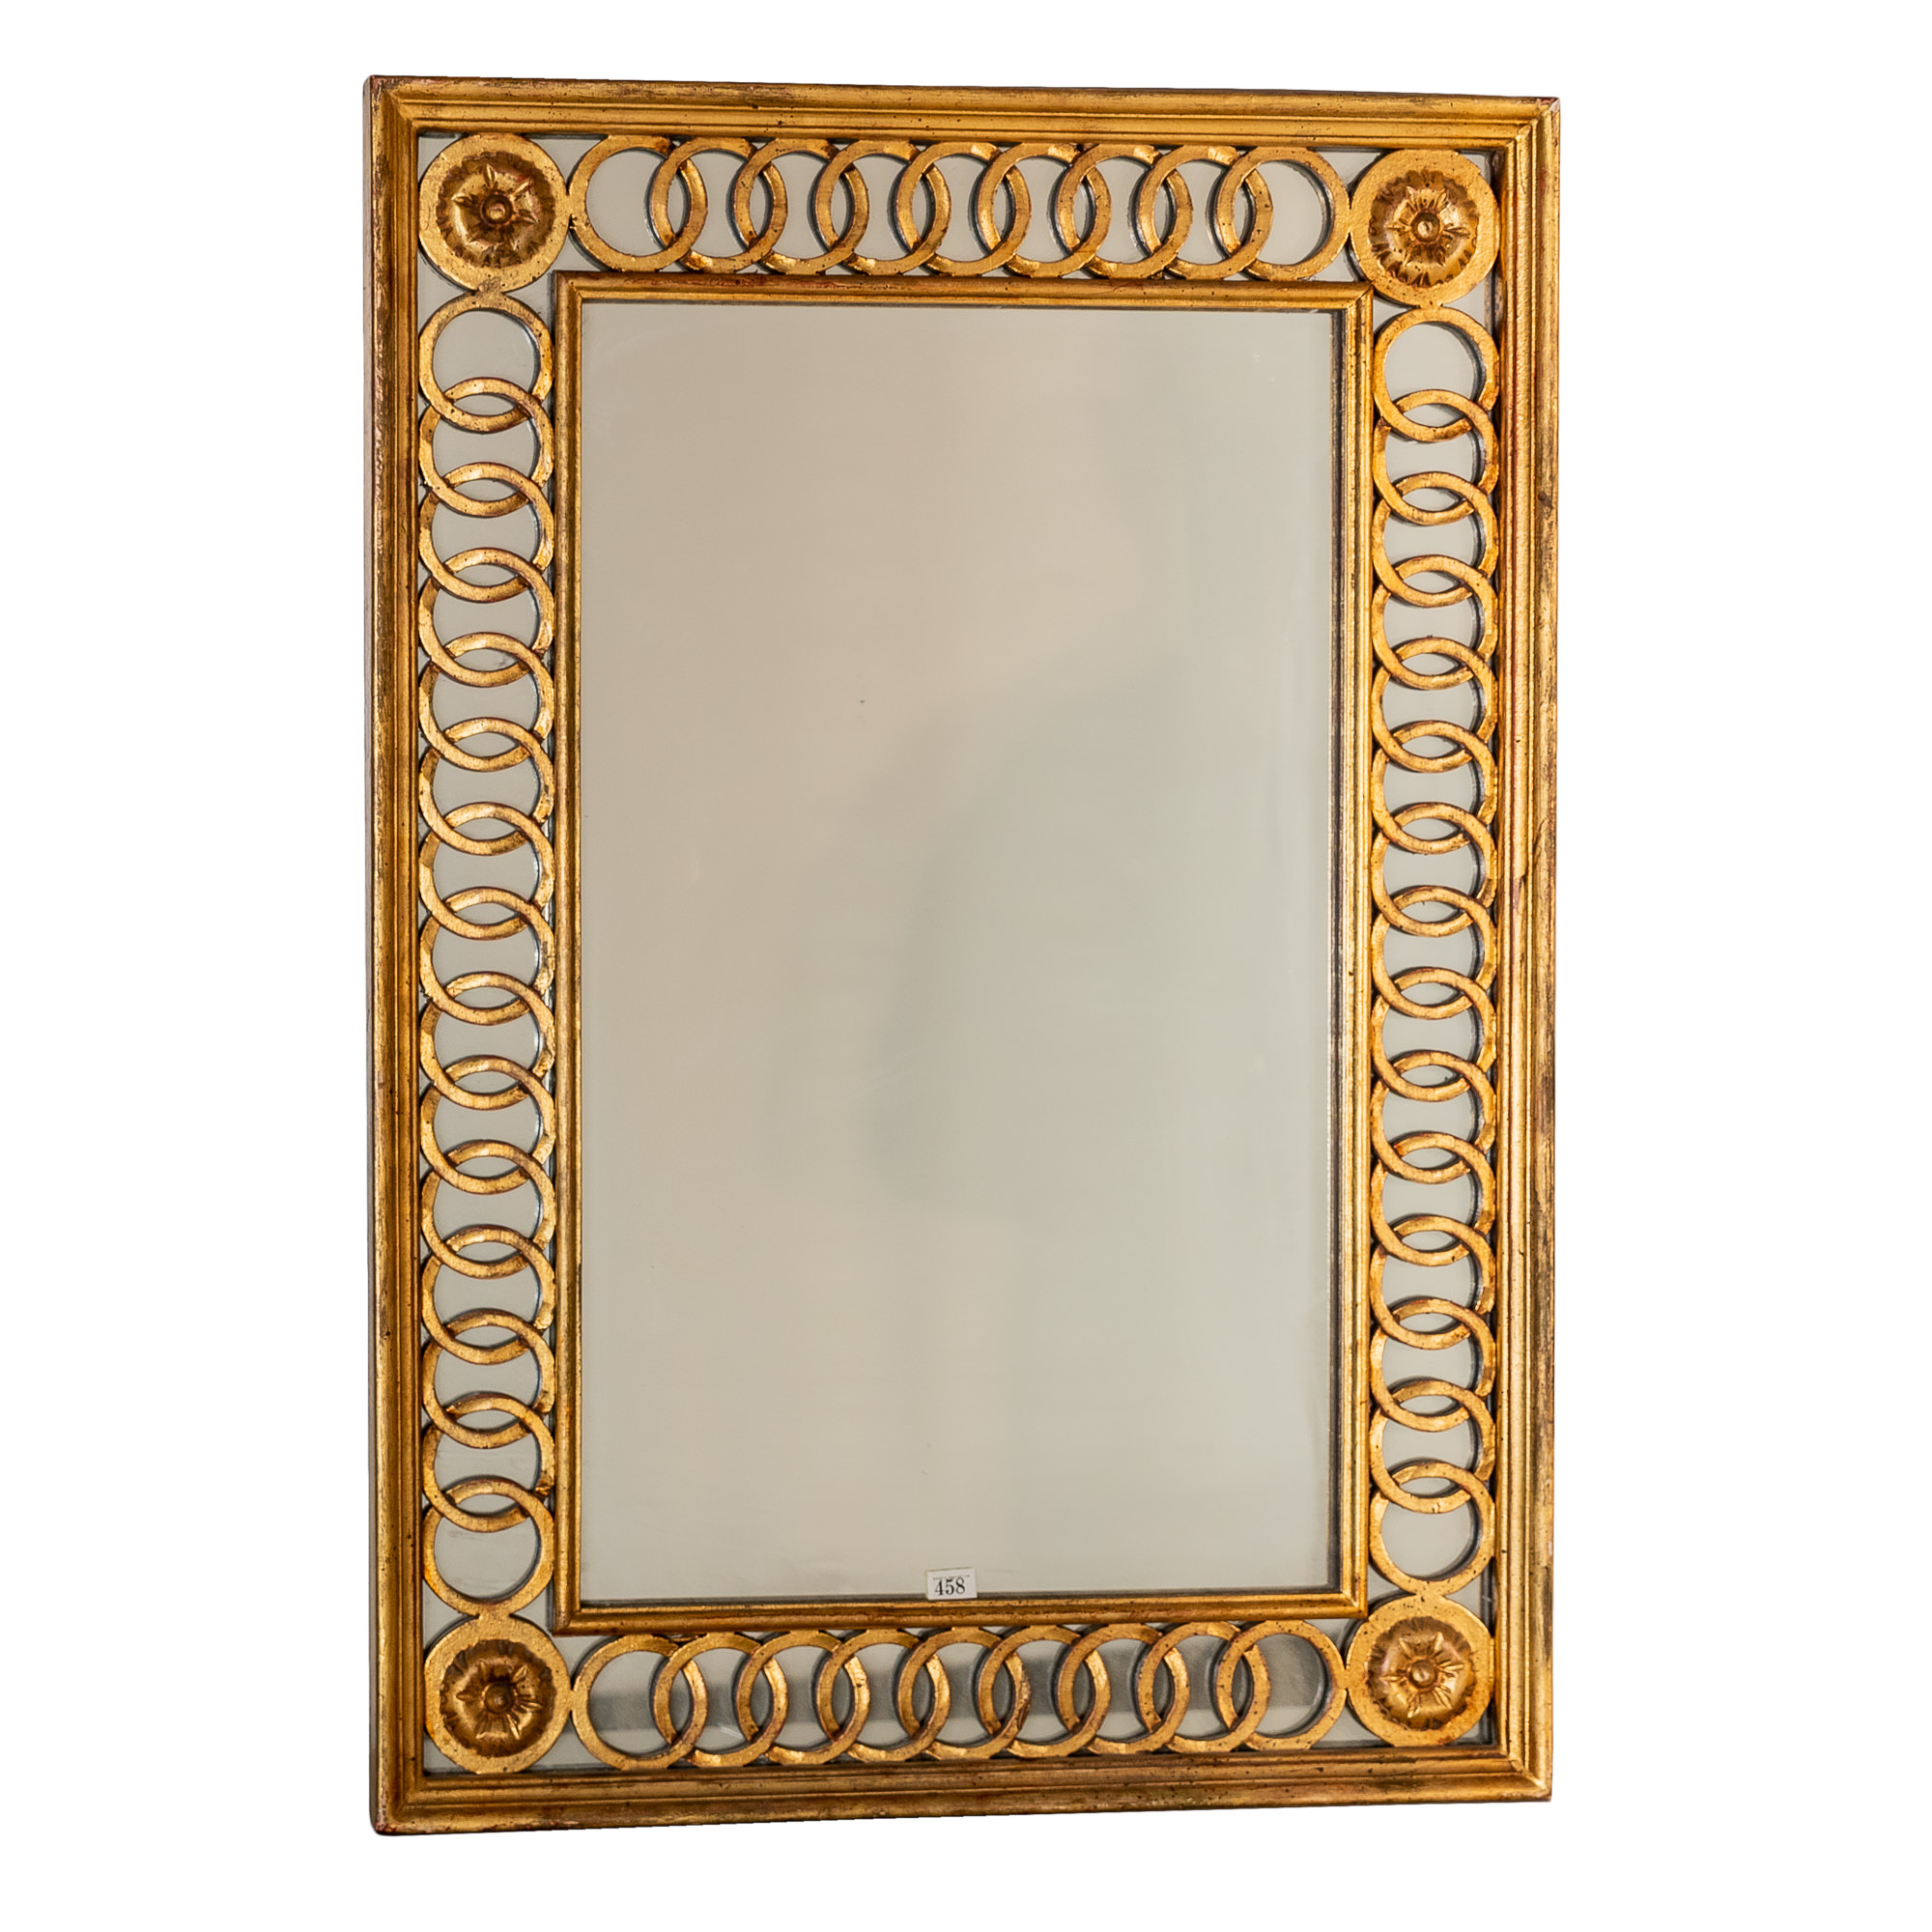 'Classical Style Carved and Pierced Giltwood Framed Mirror with Chain Border 20th Century'